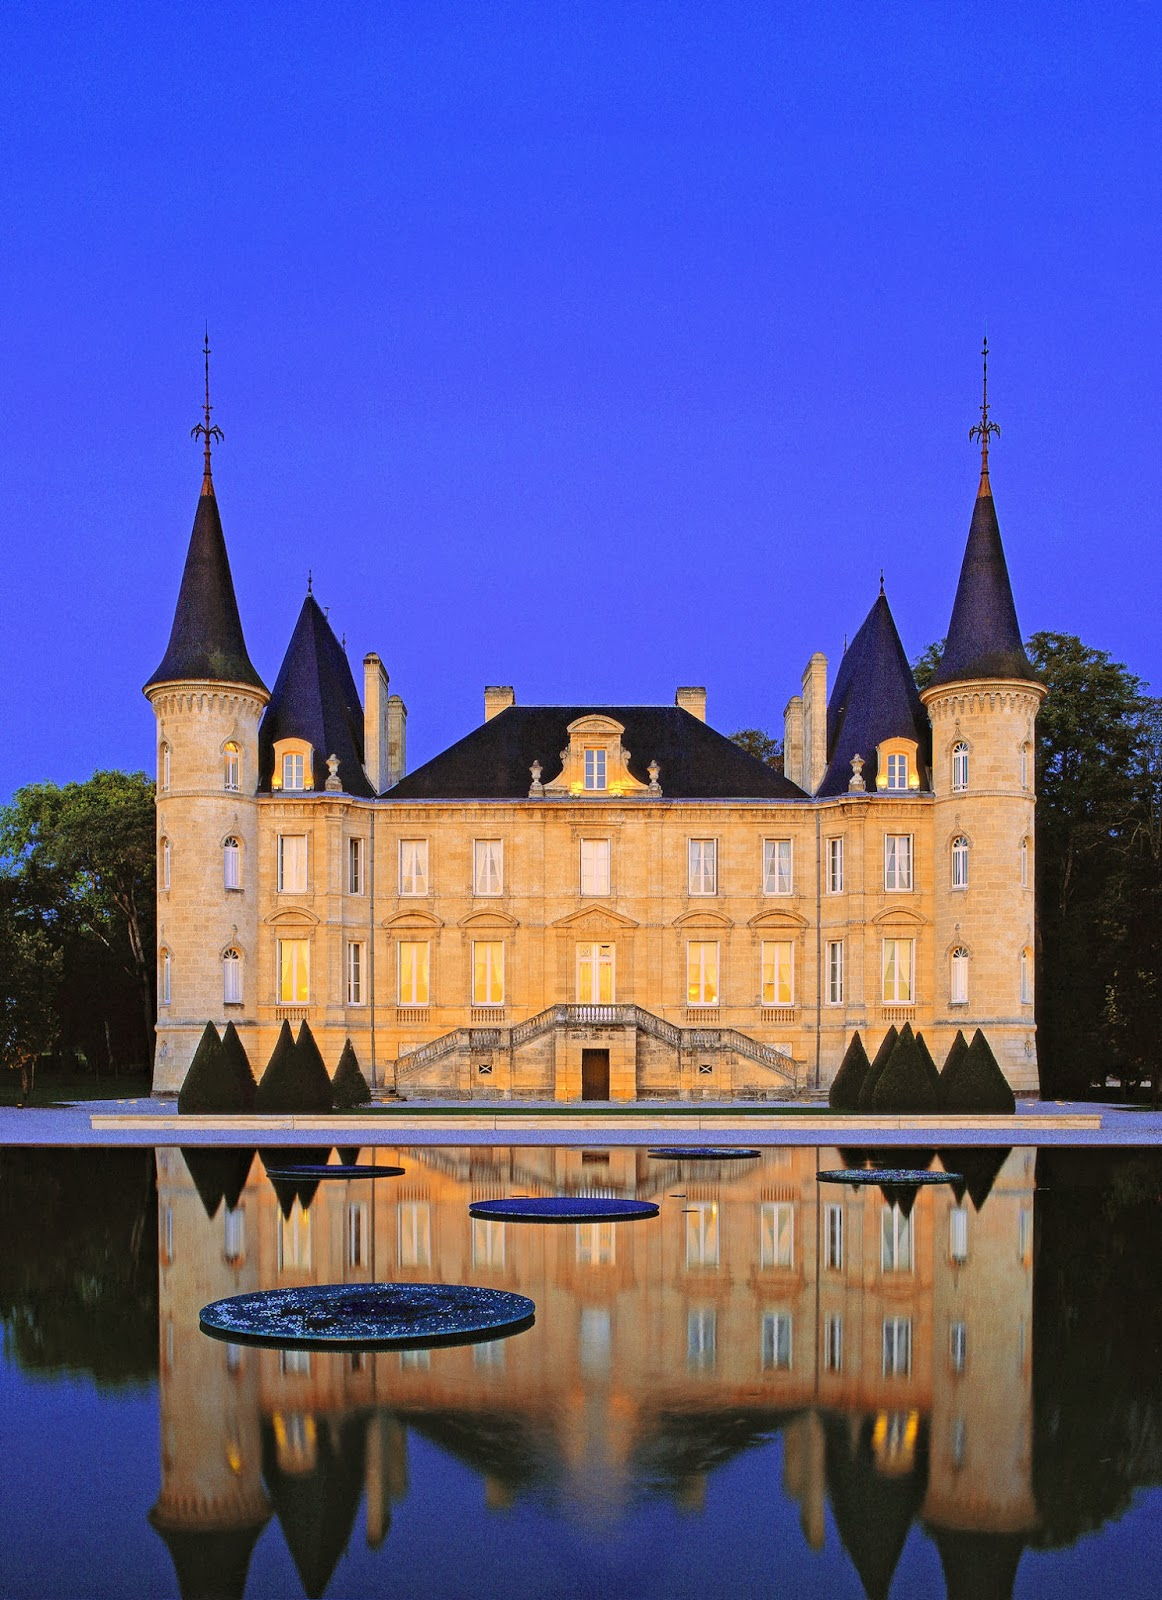 The Chateau Pichon Longueville in Bordeaux, France, is just one of many you'll experience on Viking River Cruises' newest itinerary, 'Châteaux, Rivers and Wine' debuting in March 2014. Photo: Property of Viking River Cruises. Unauthorized use is prohibited.